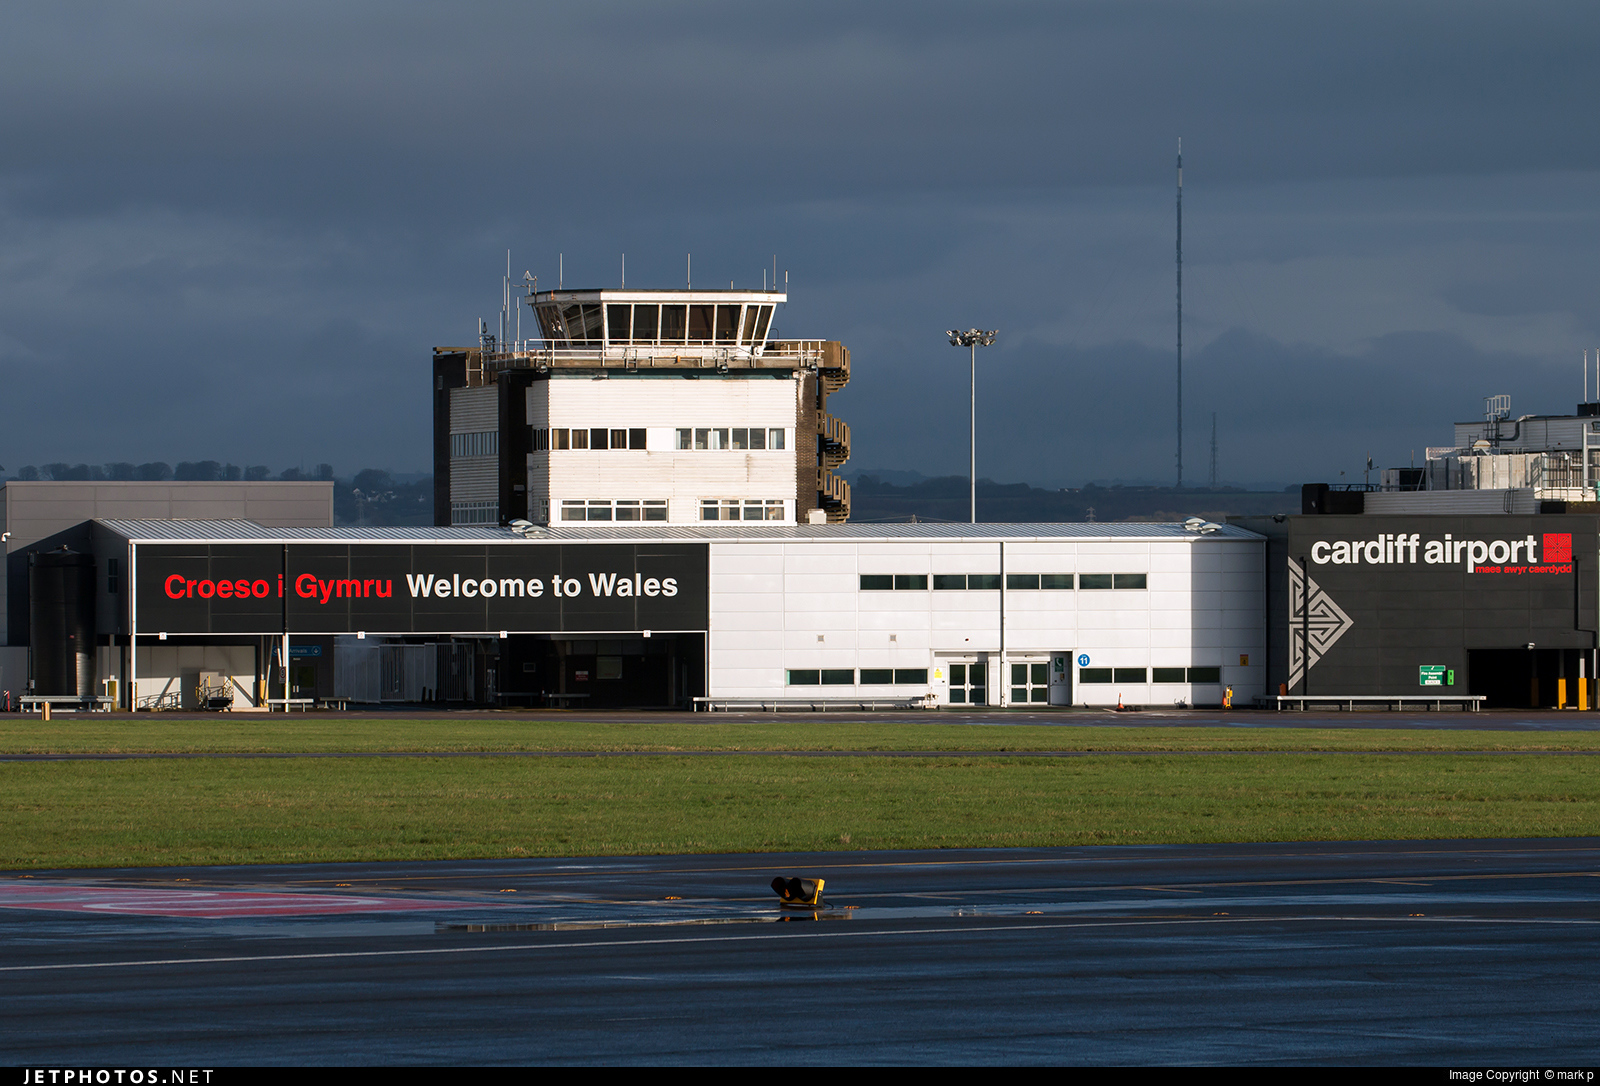 EGFF - Airport - Control Tower